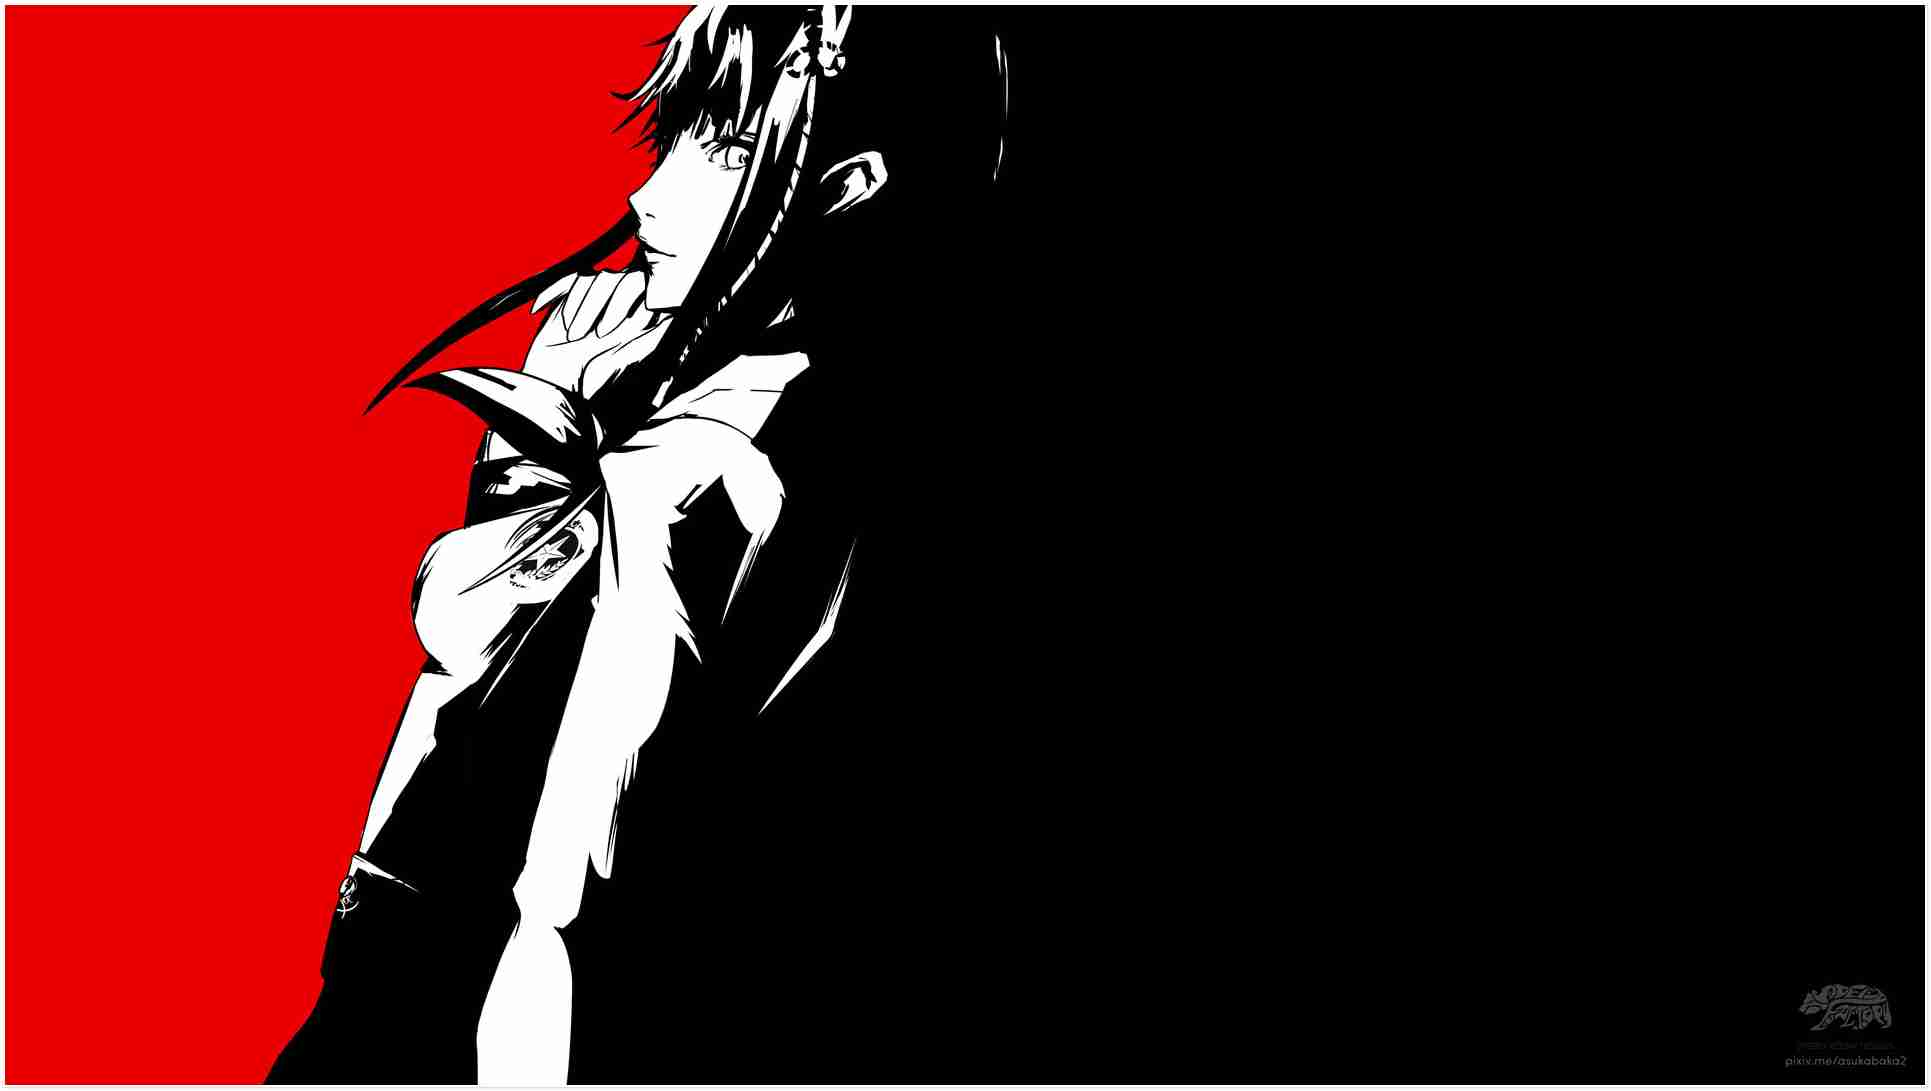 In Persona 5 Wallpapers You Will Find An Excellent Persona 5 Hifumi Togo 2581062 Hd Wallpaper Backgrounds Download